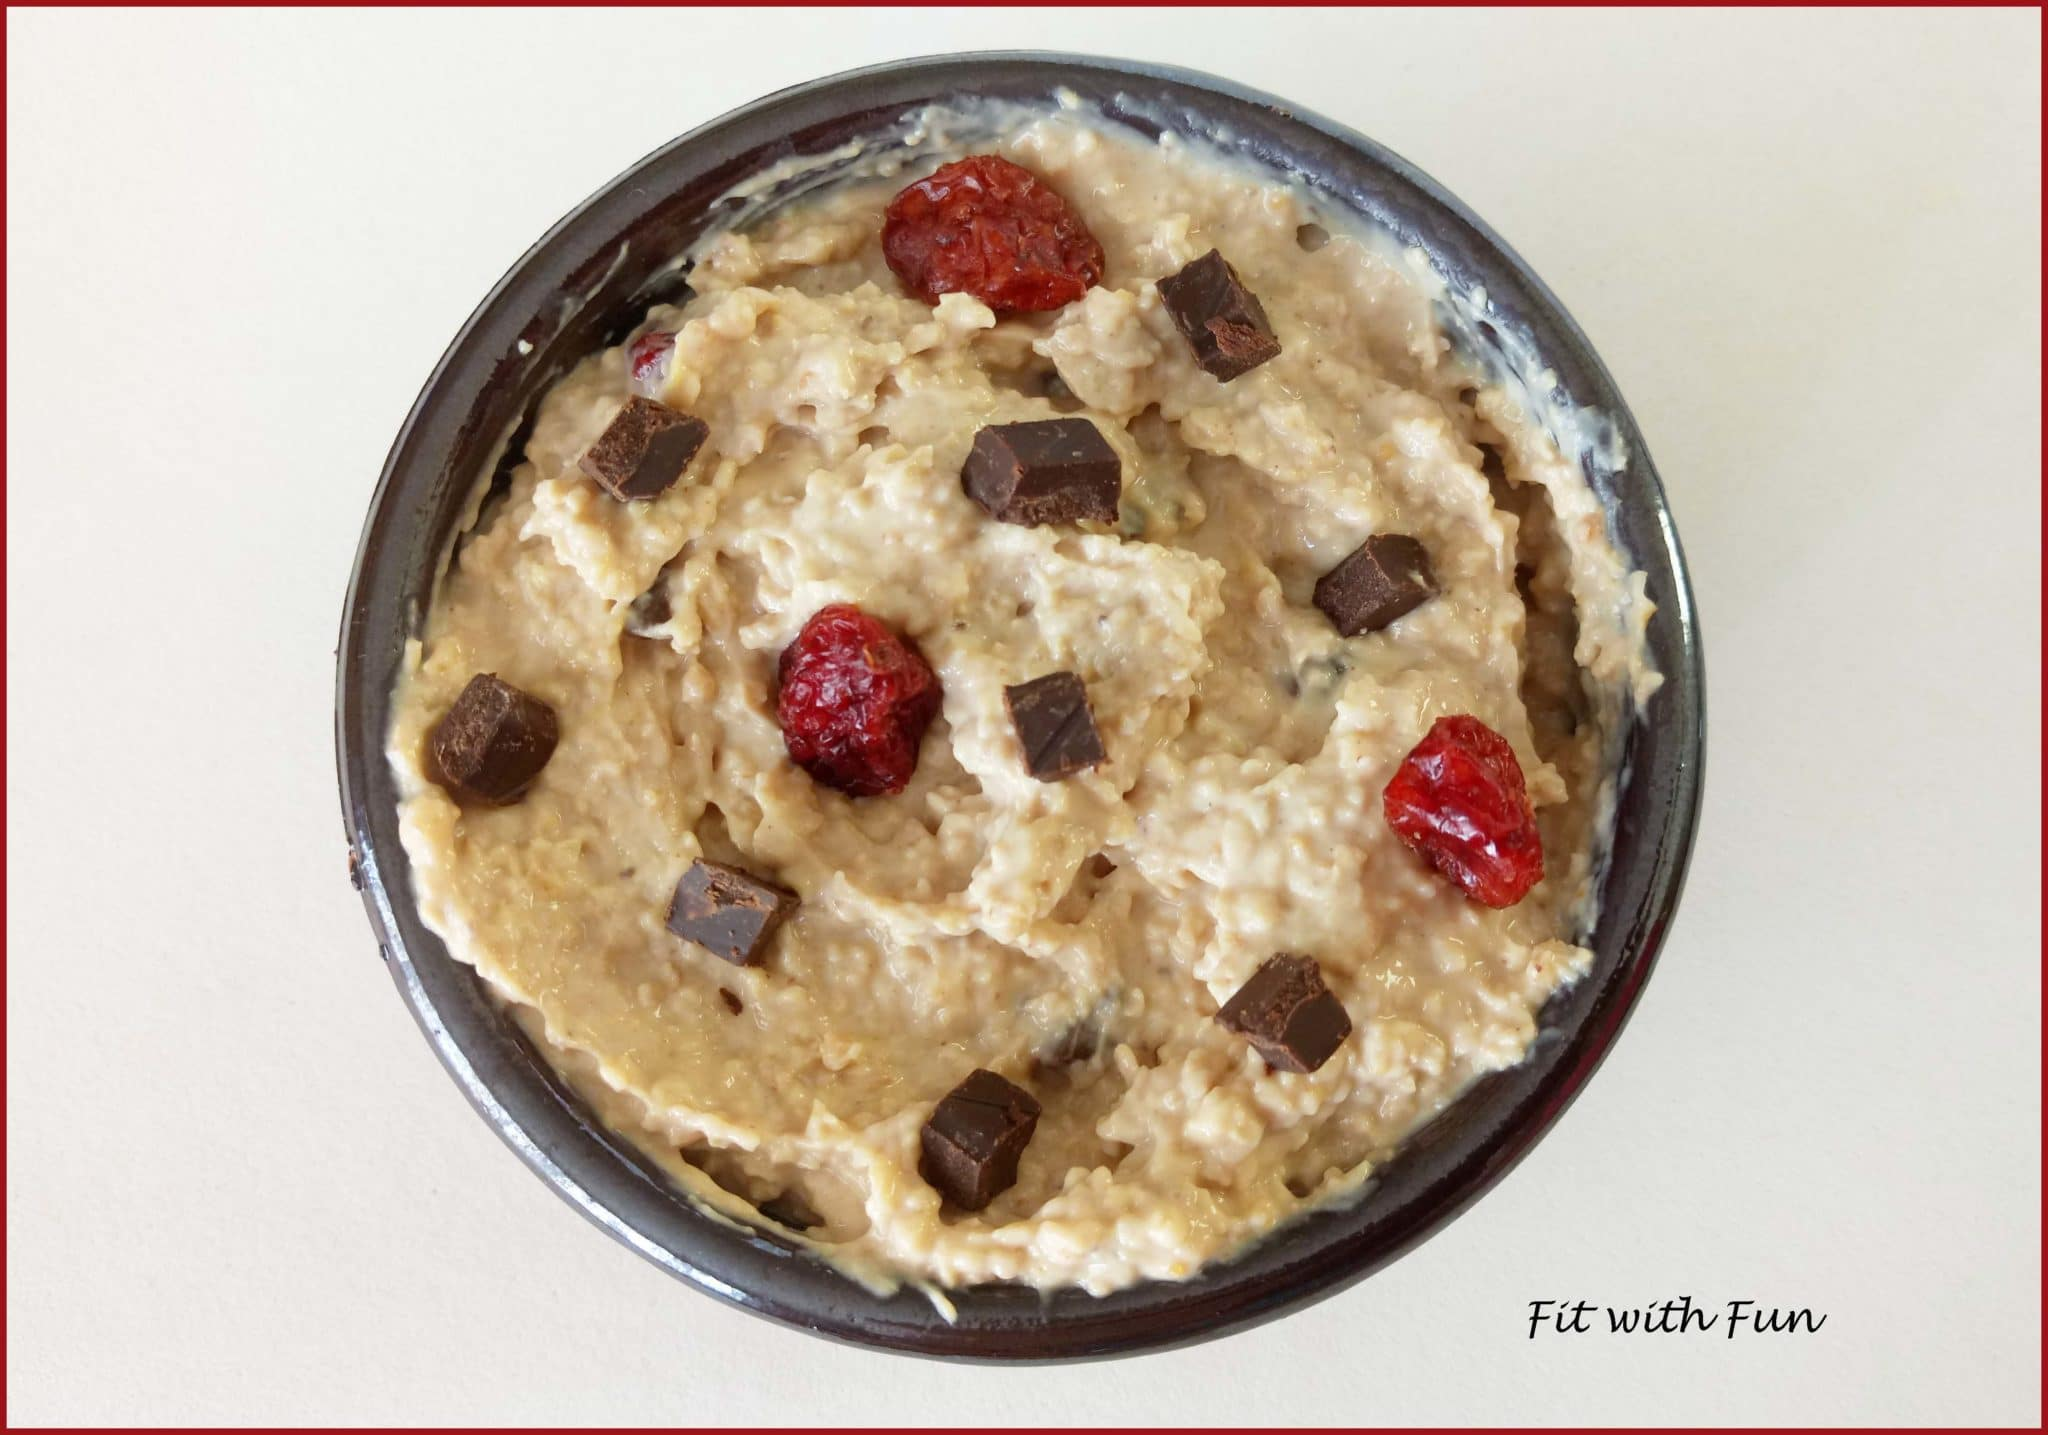 Cookie Dough Fit allo Yogurt con Video Ricetta